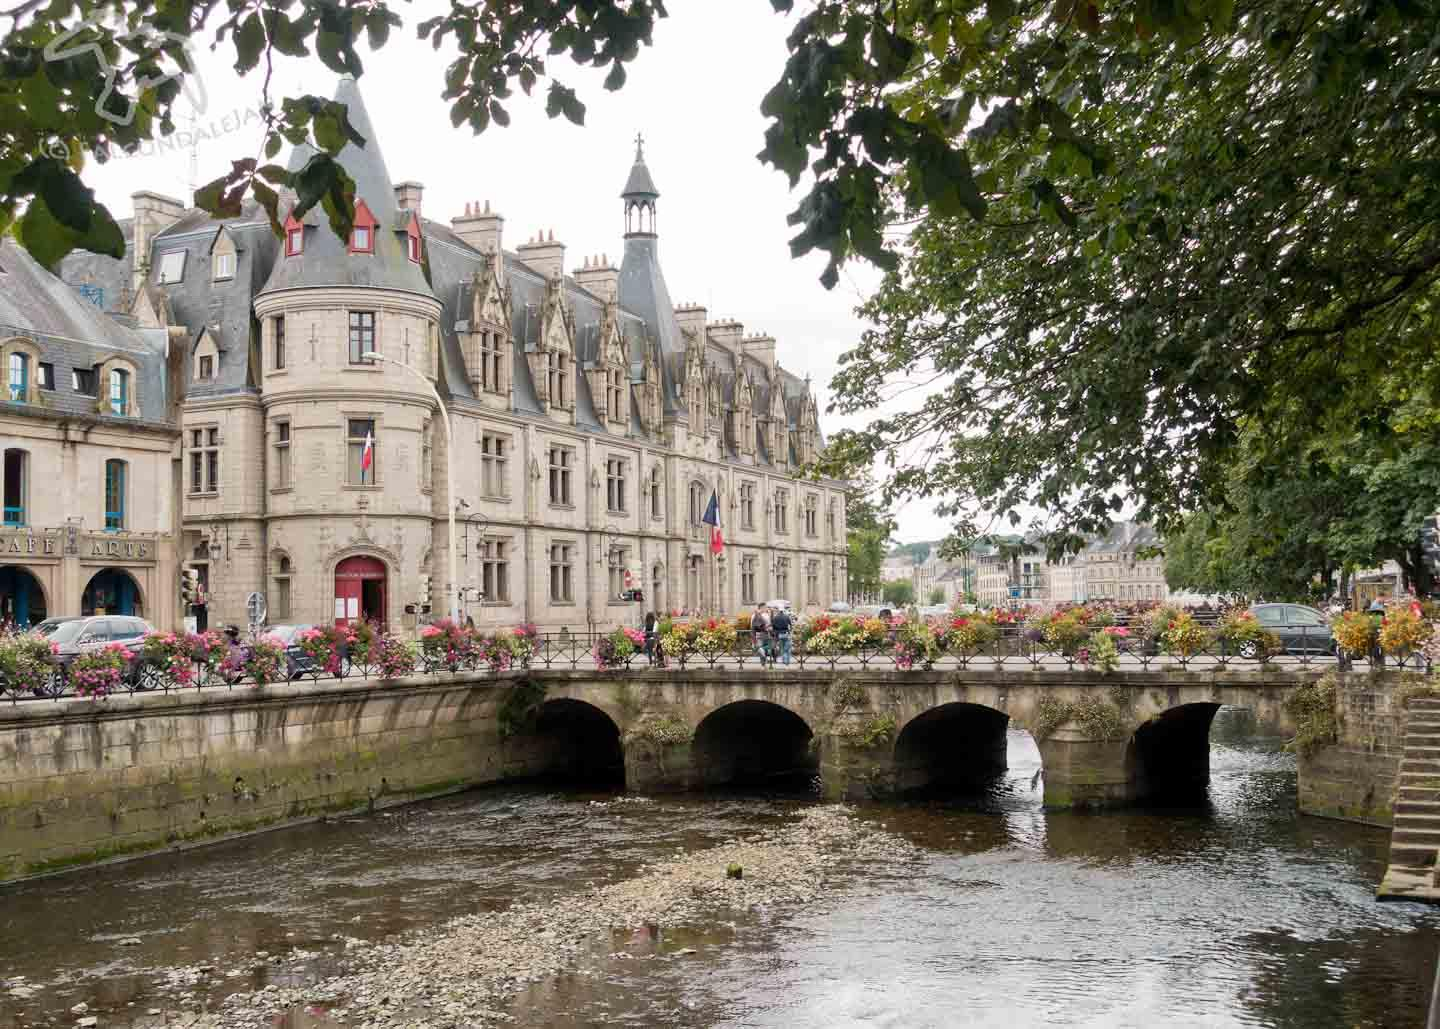 Take a Walk with the Family through Quimper, Brittany on Falcondale Life blog. A walking route with children through the picturesque old Breton city of Quimper. A short walk with beautiful photographs and detailed directions. Family friendly French holiday information.